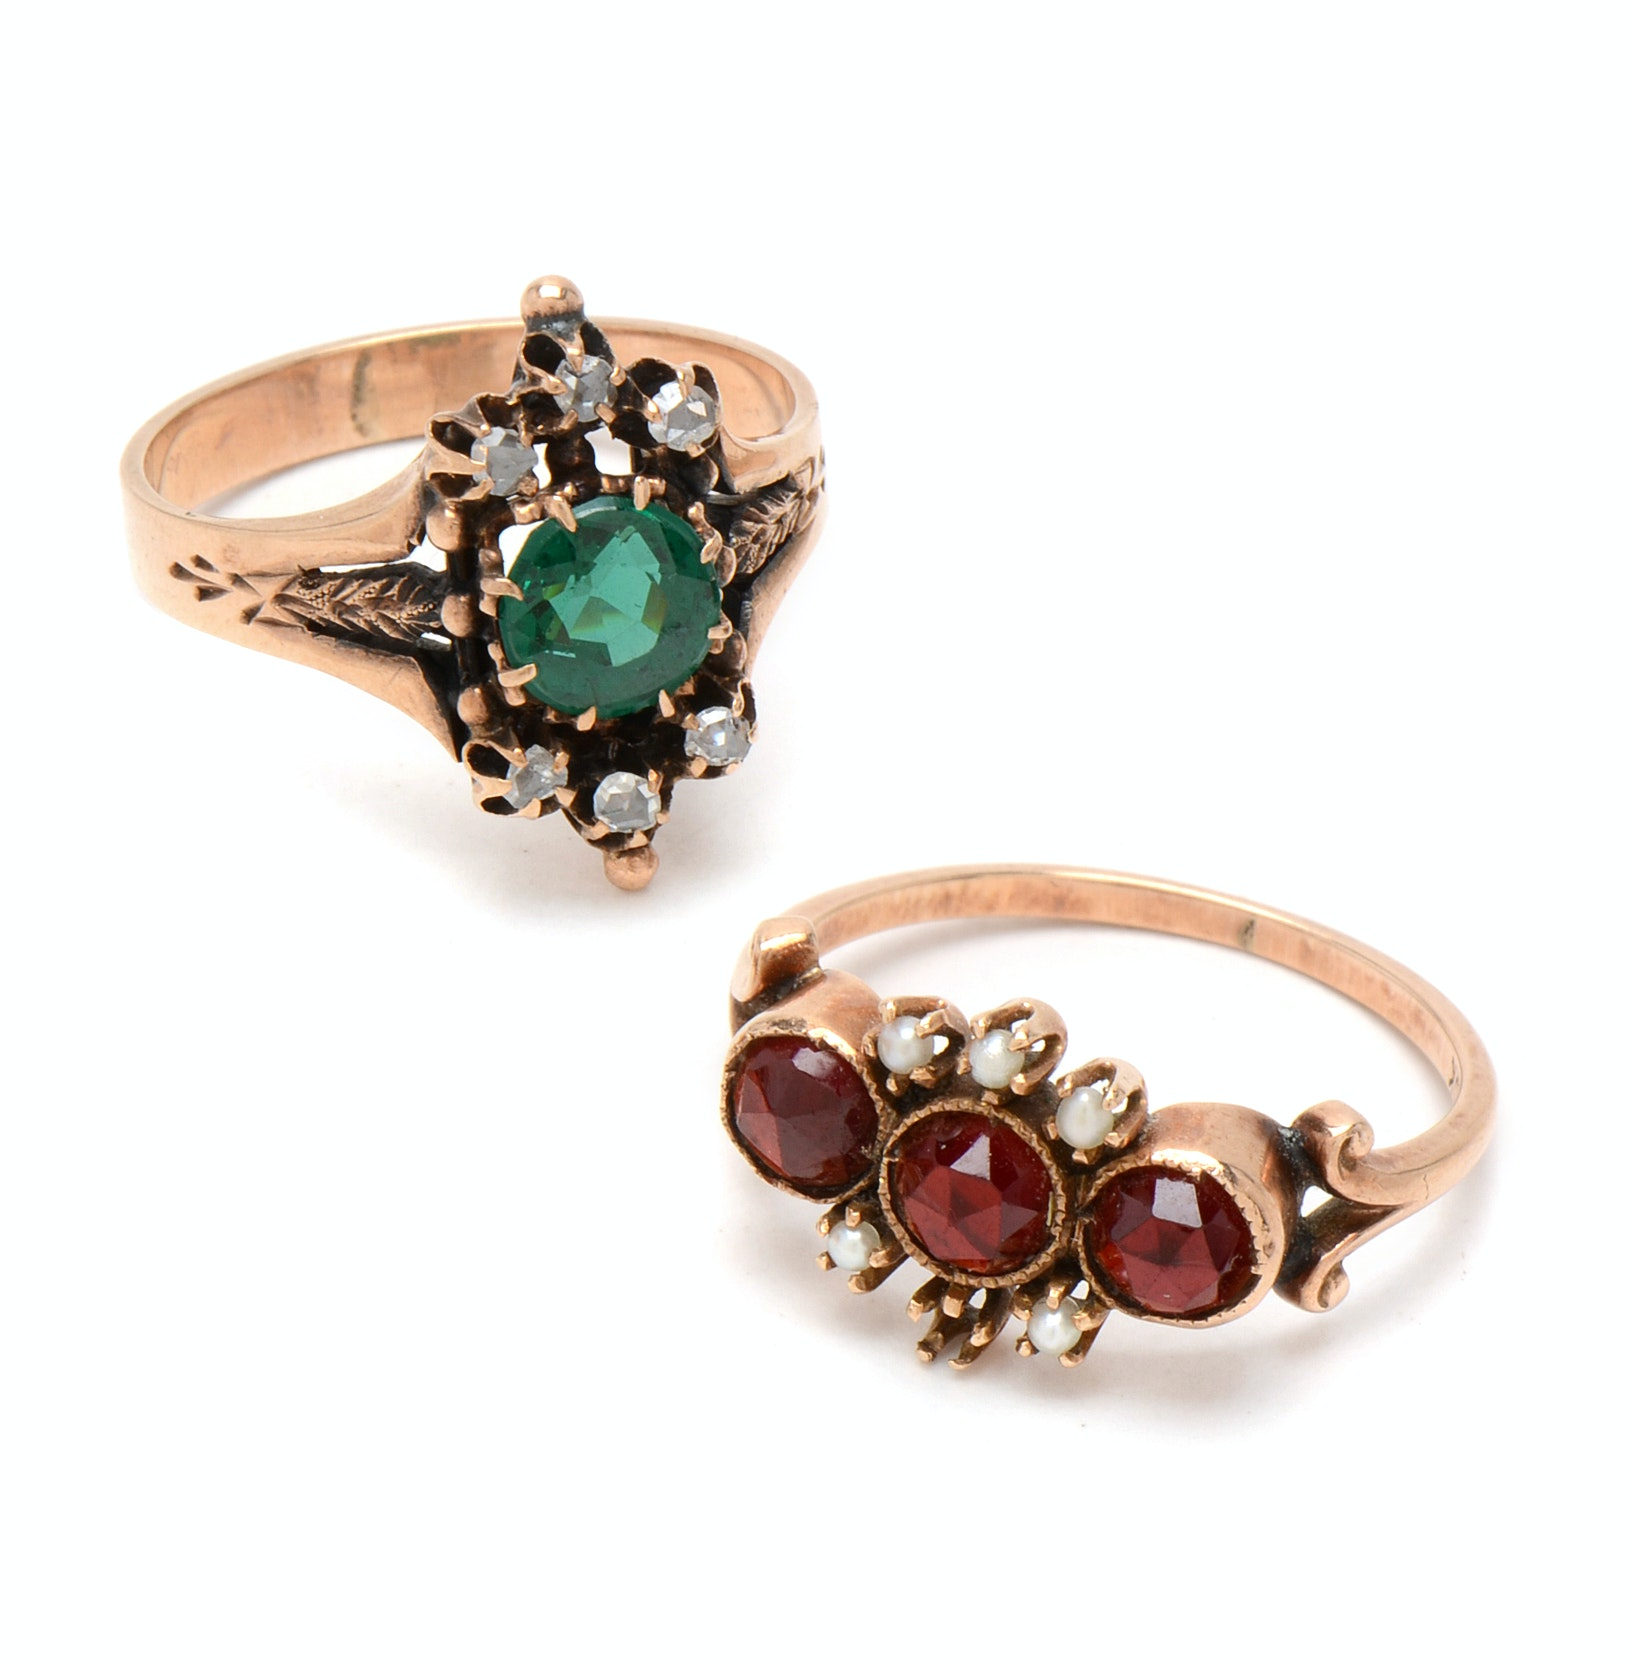 Pair of Victorian 10K Rose Gold Rings with Garnets, Diamonds and Pearls